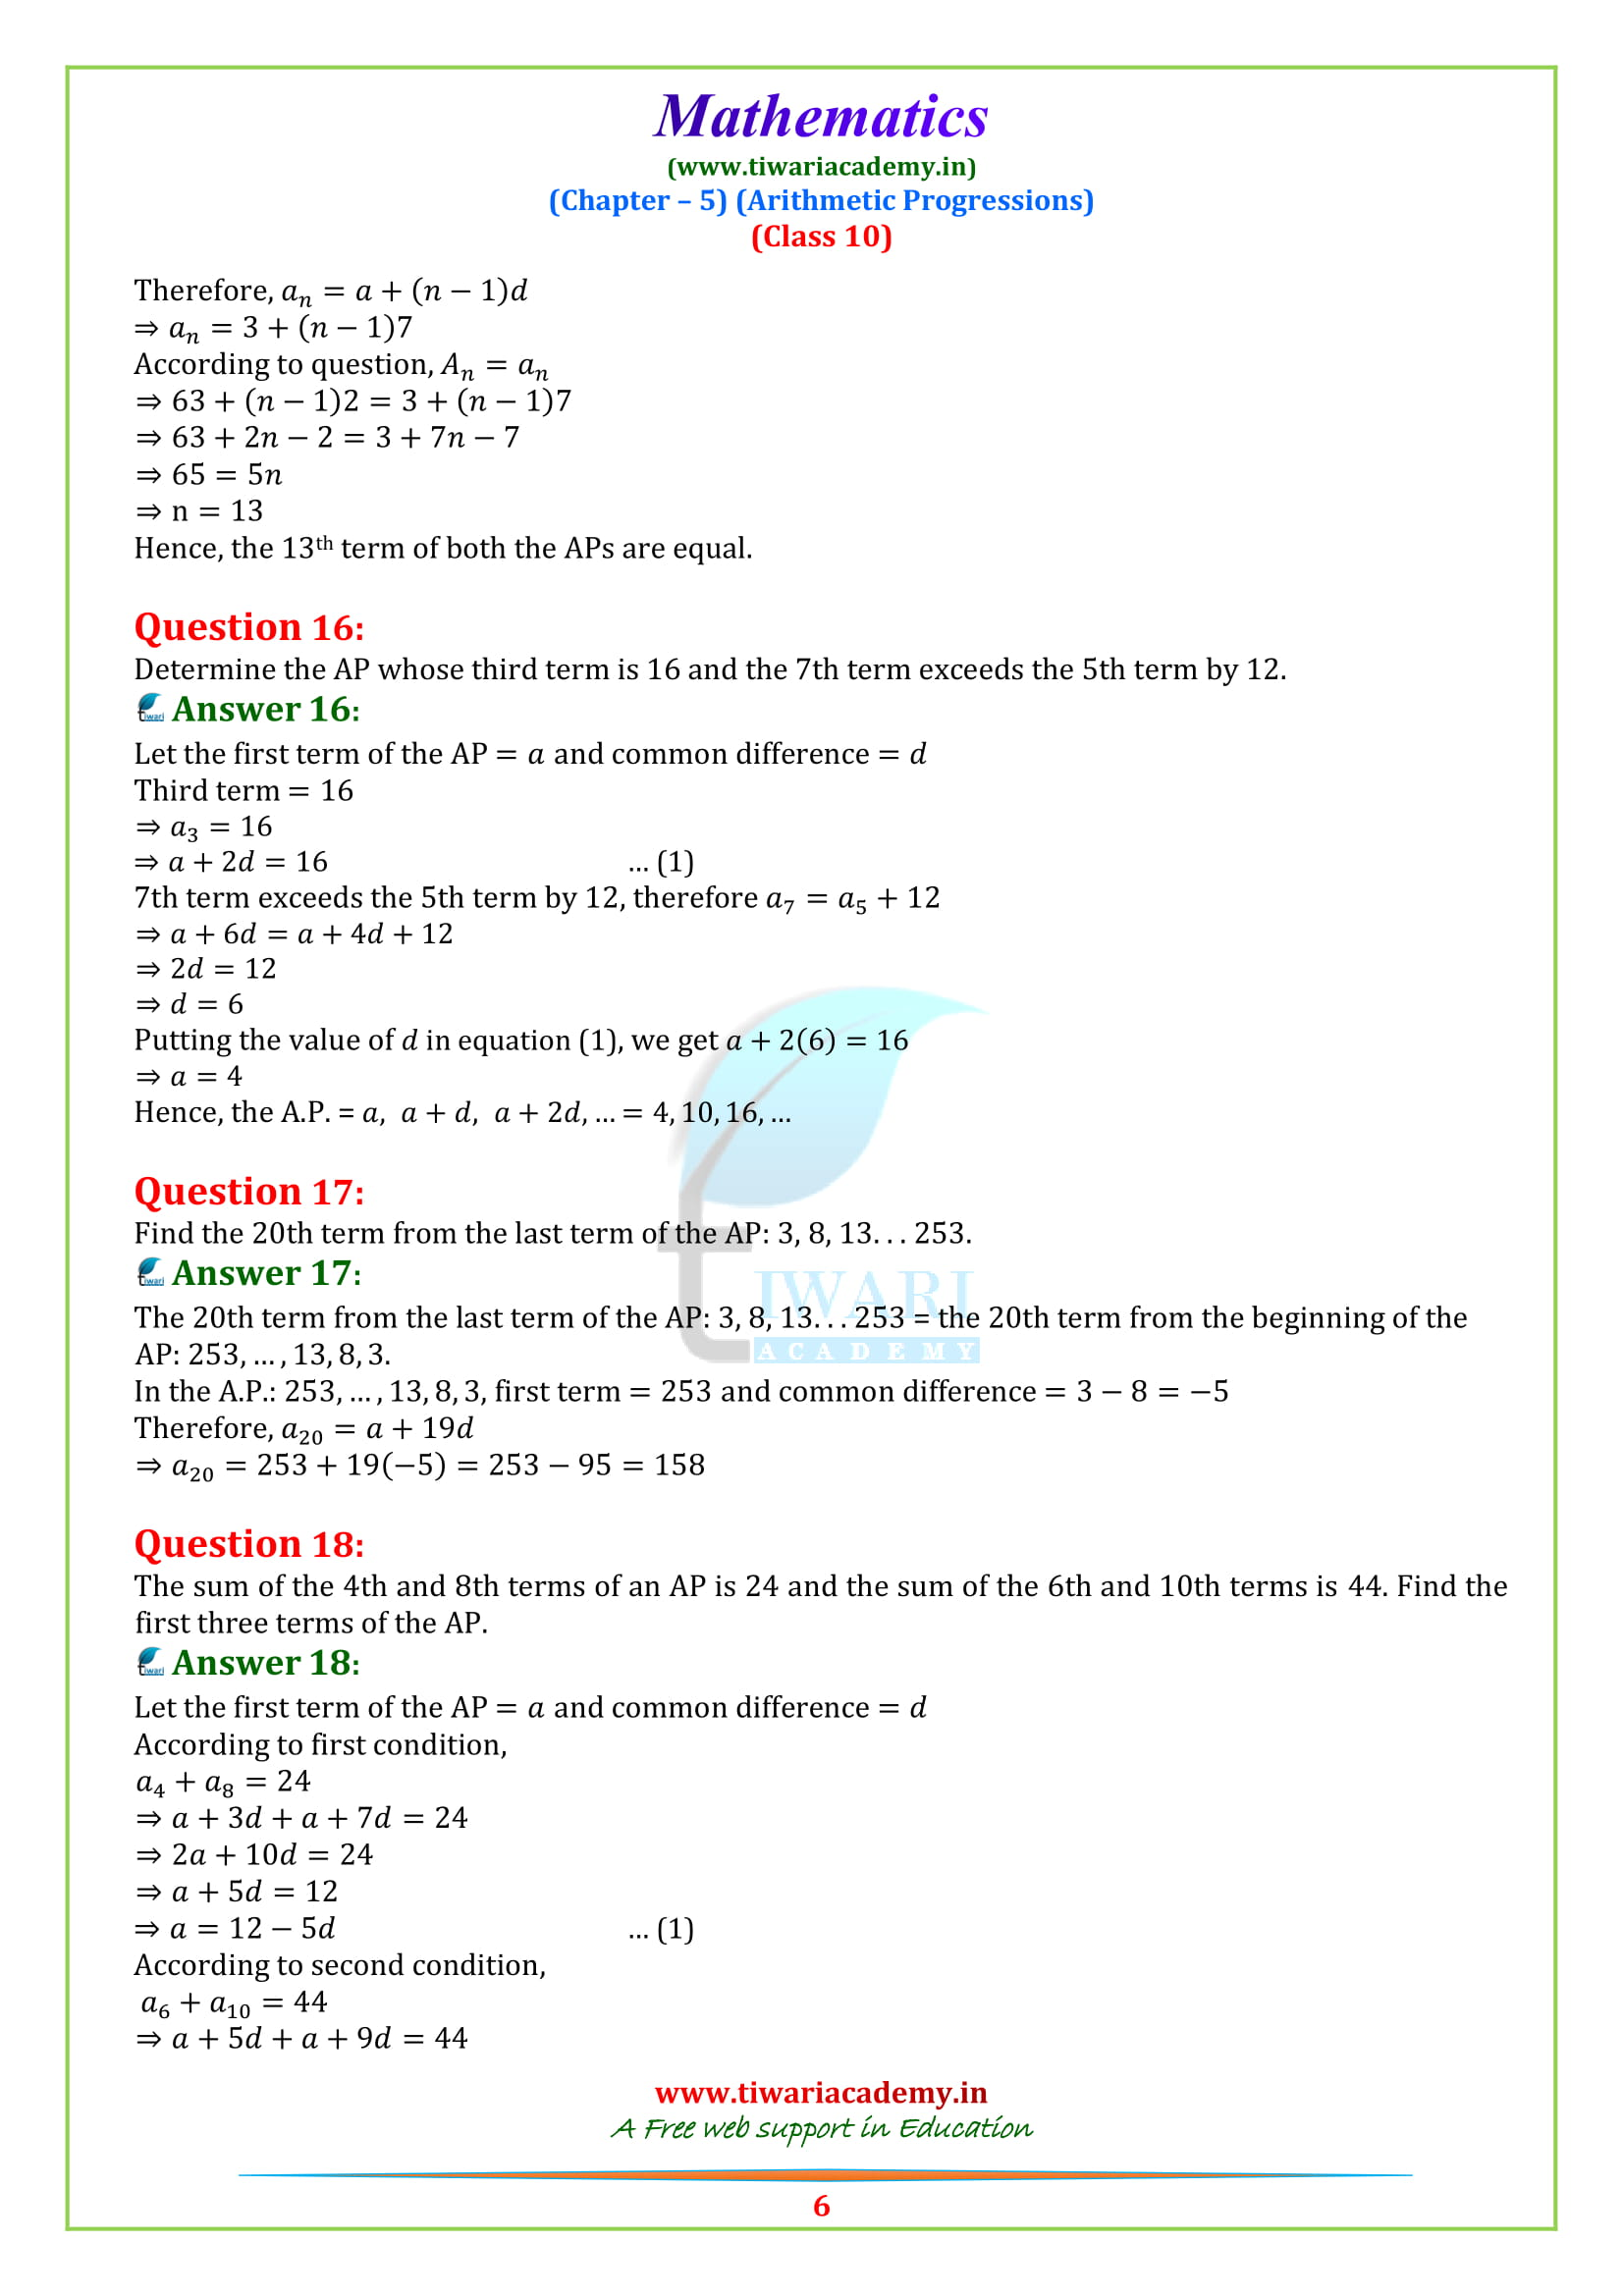 NCERT Solutions for class 10 Maths Exercise 5.2 question 9, 10, 11, 12, 13, 14.